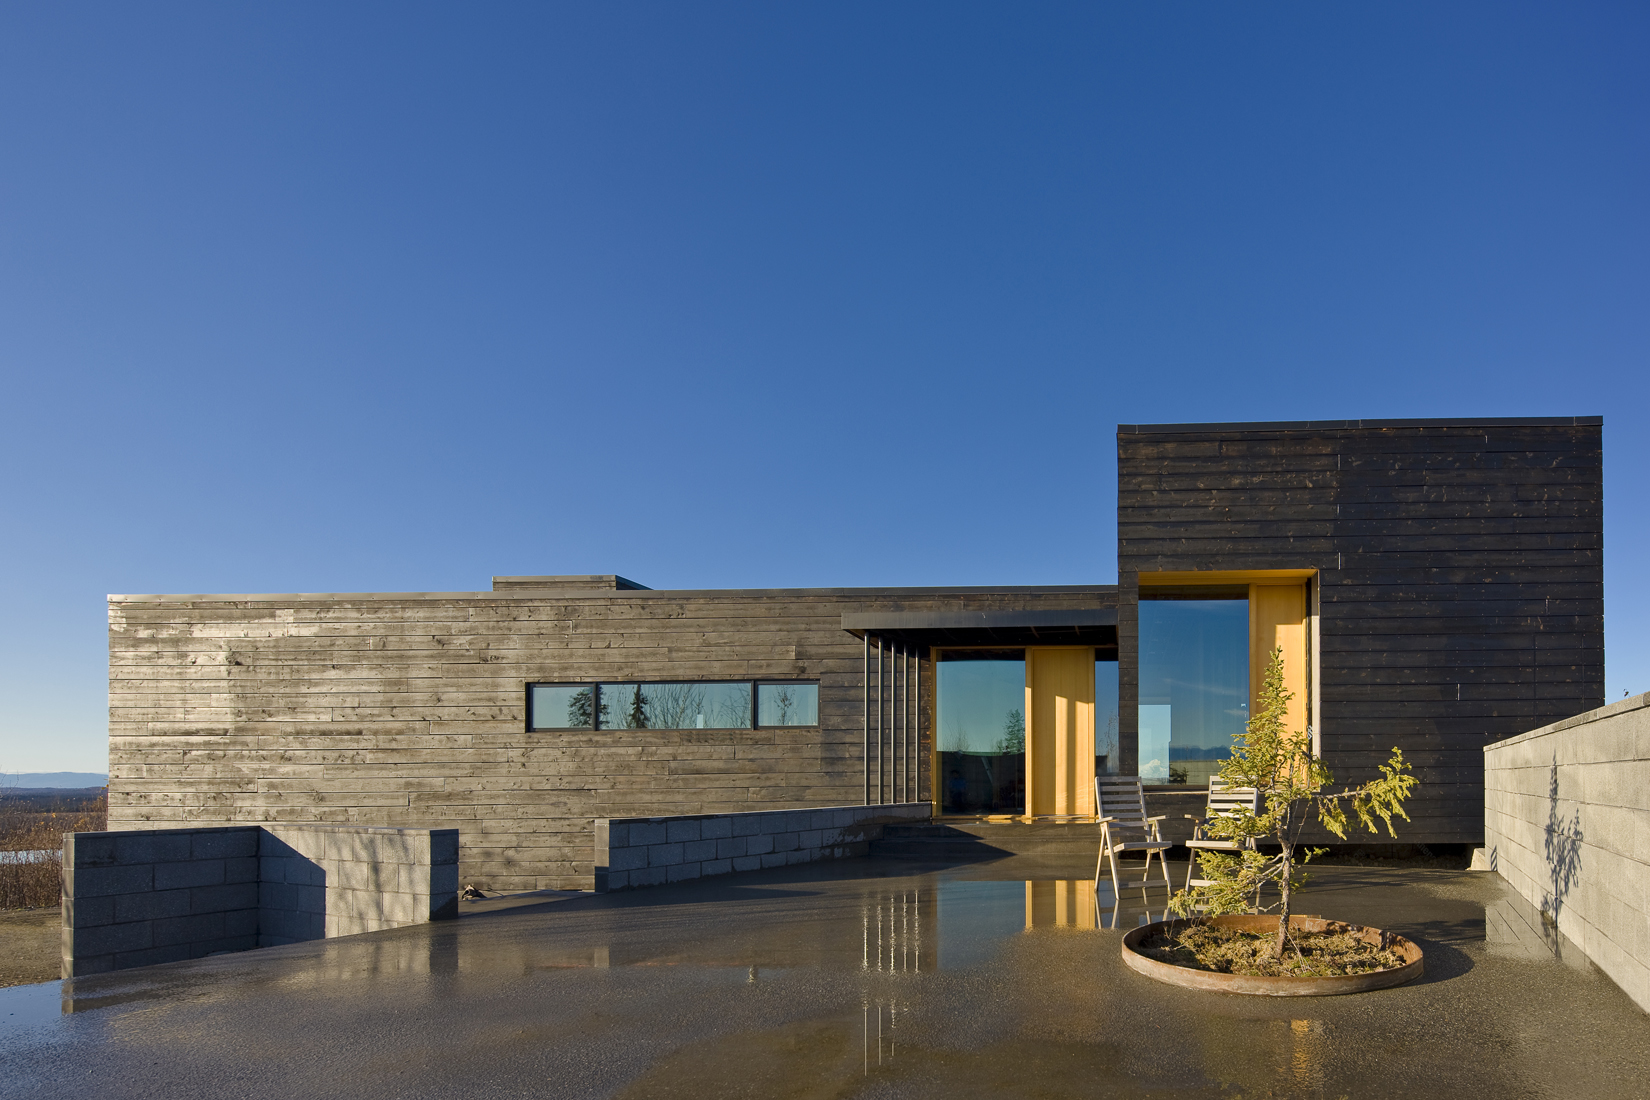 Modern Dream Home in the Wild-House for a Musher by Mayer Sattler-Smith Homesthetics